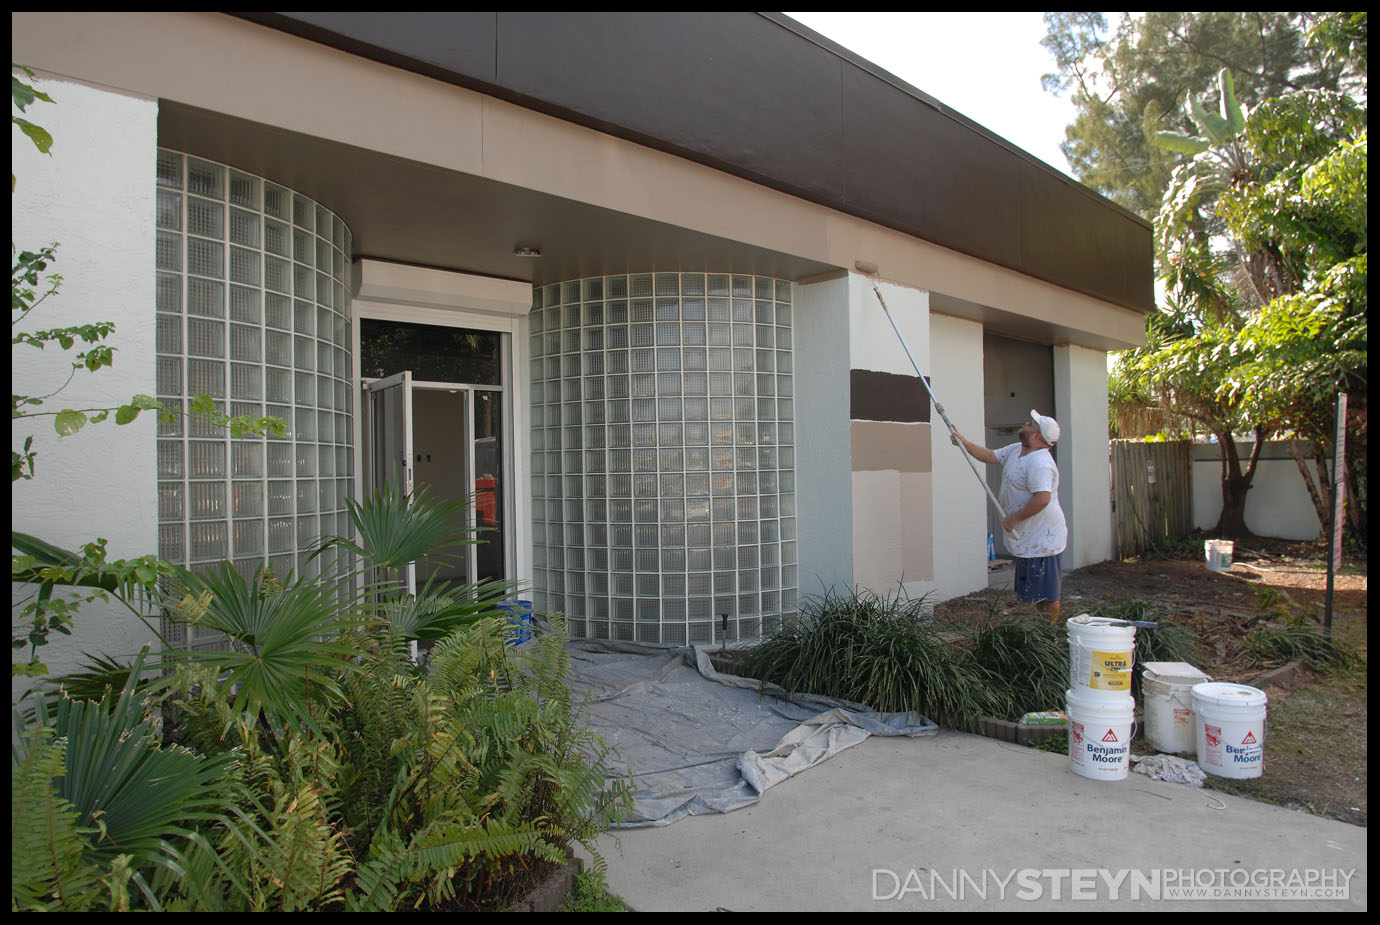 Painting the new Danny Steyn Photography Studio